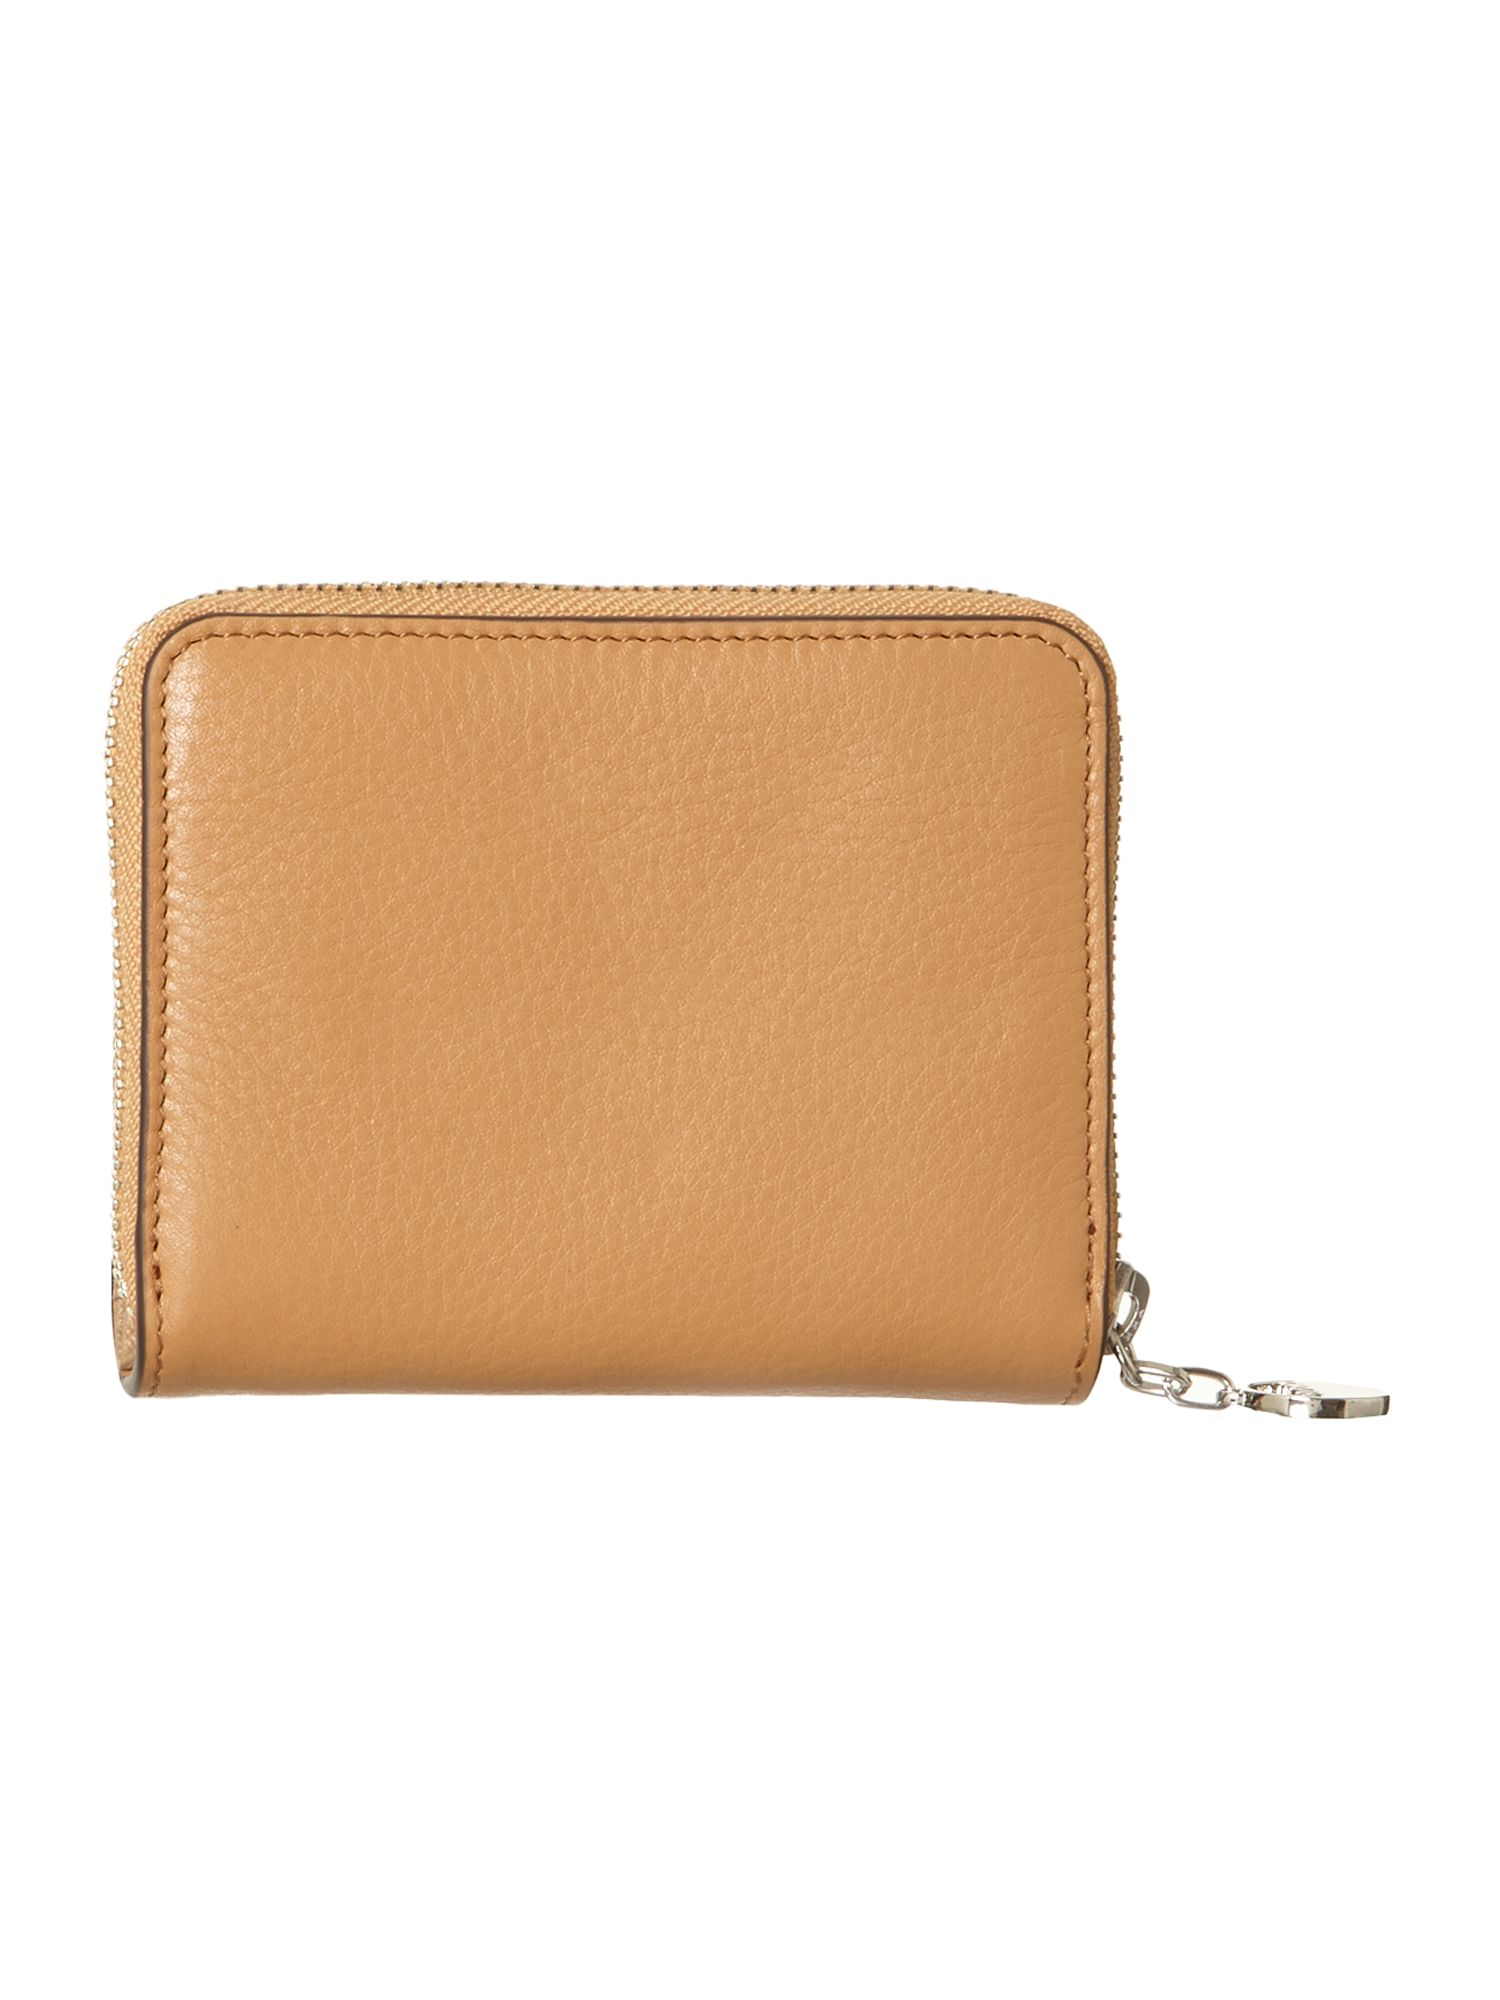 Tan small zip around purse